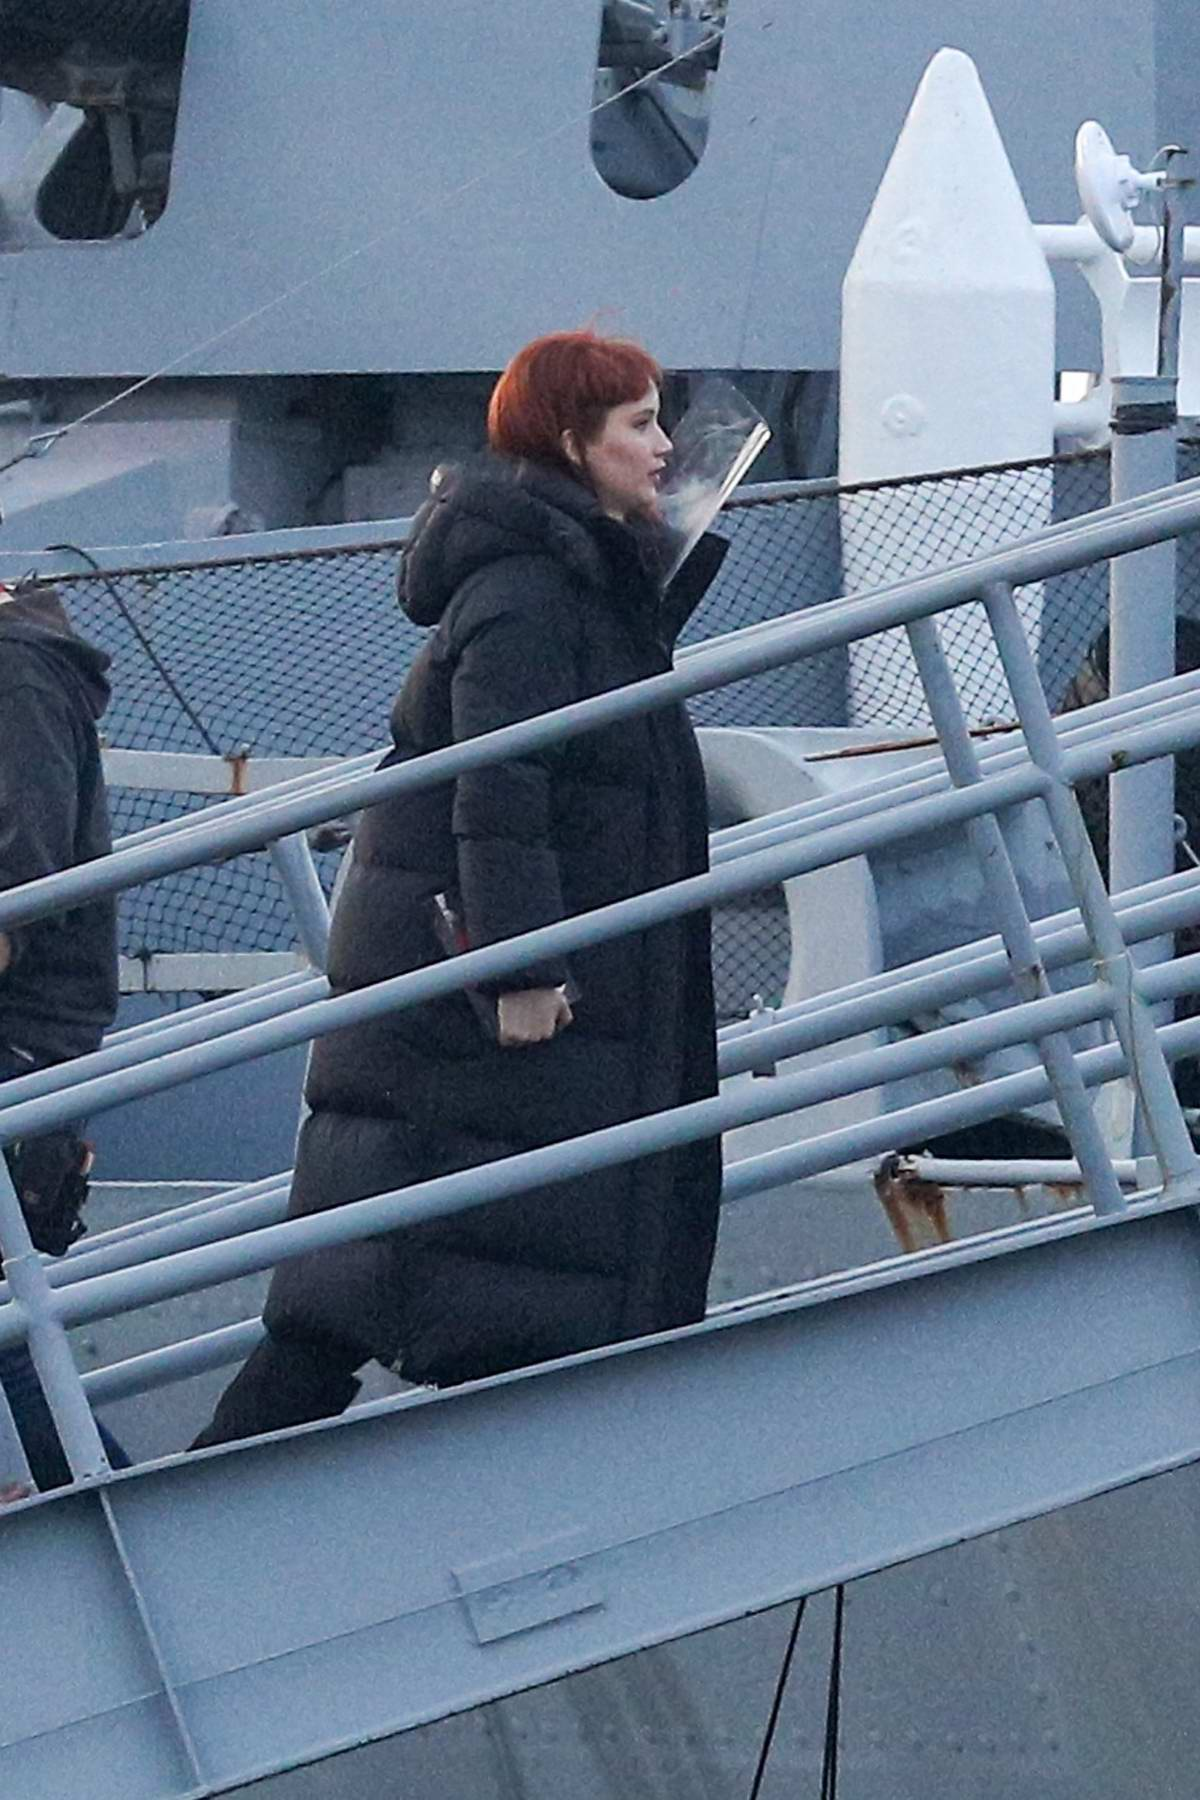 Jennifer Lawrence heading to set on the USS Massachusetts for the filming of 'Don't Look Up' in Fall River, Massachusetts